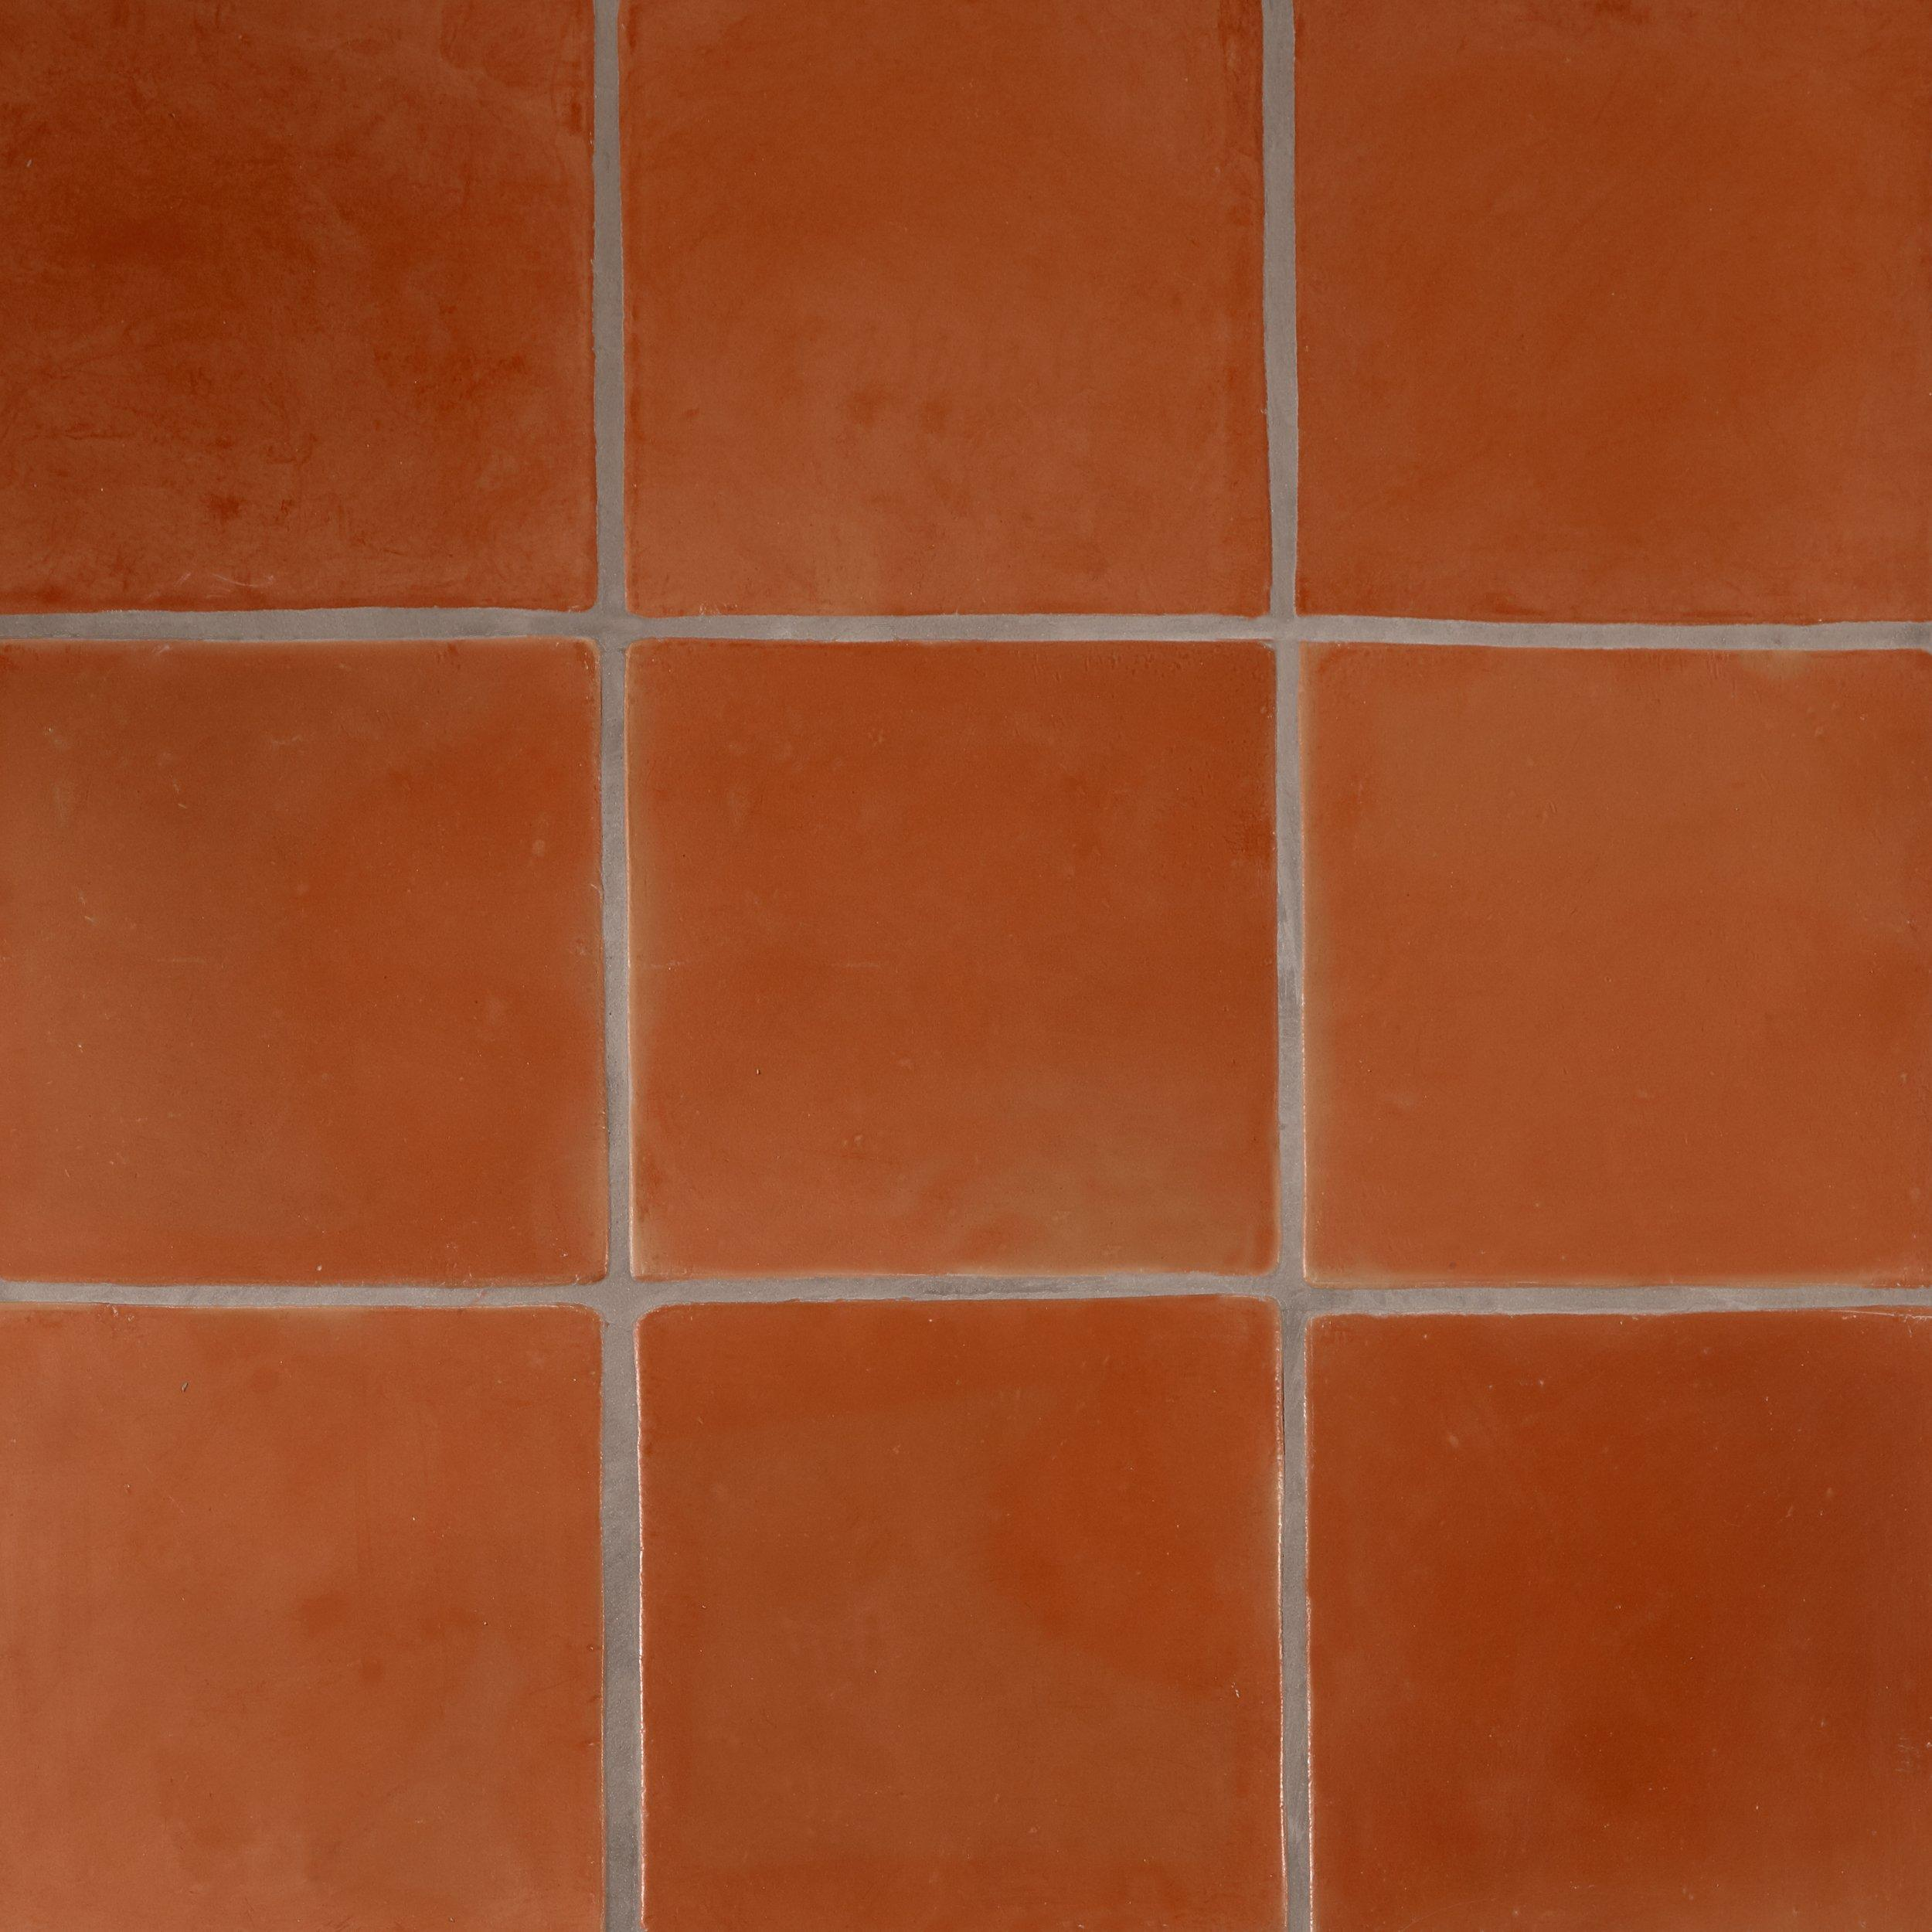 Super Sealed Saltillo Tile In 2020 Saltillo Tile Natural Tile Red Tile Floor